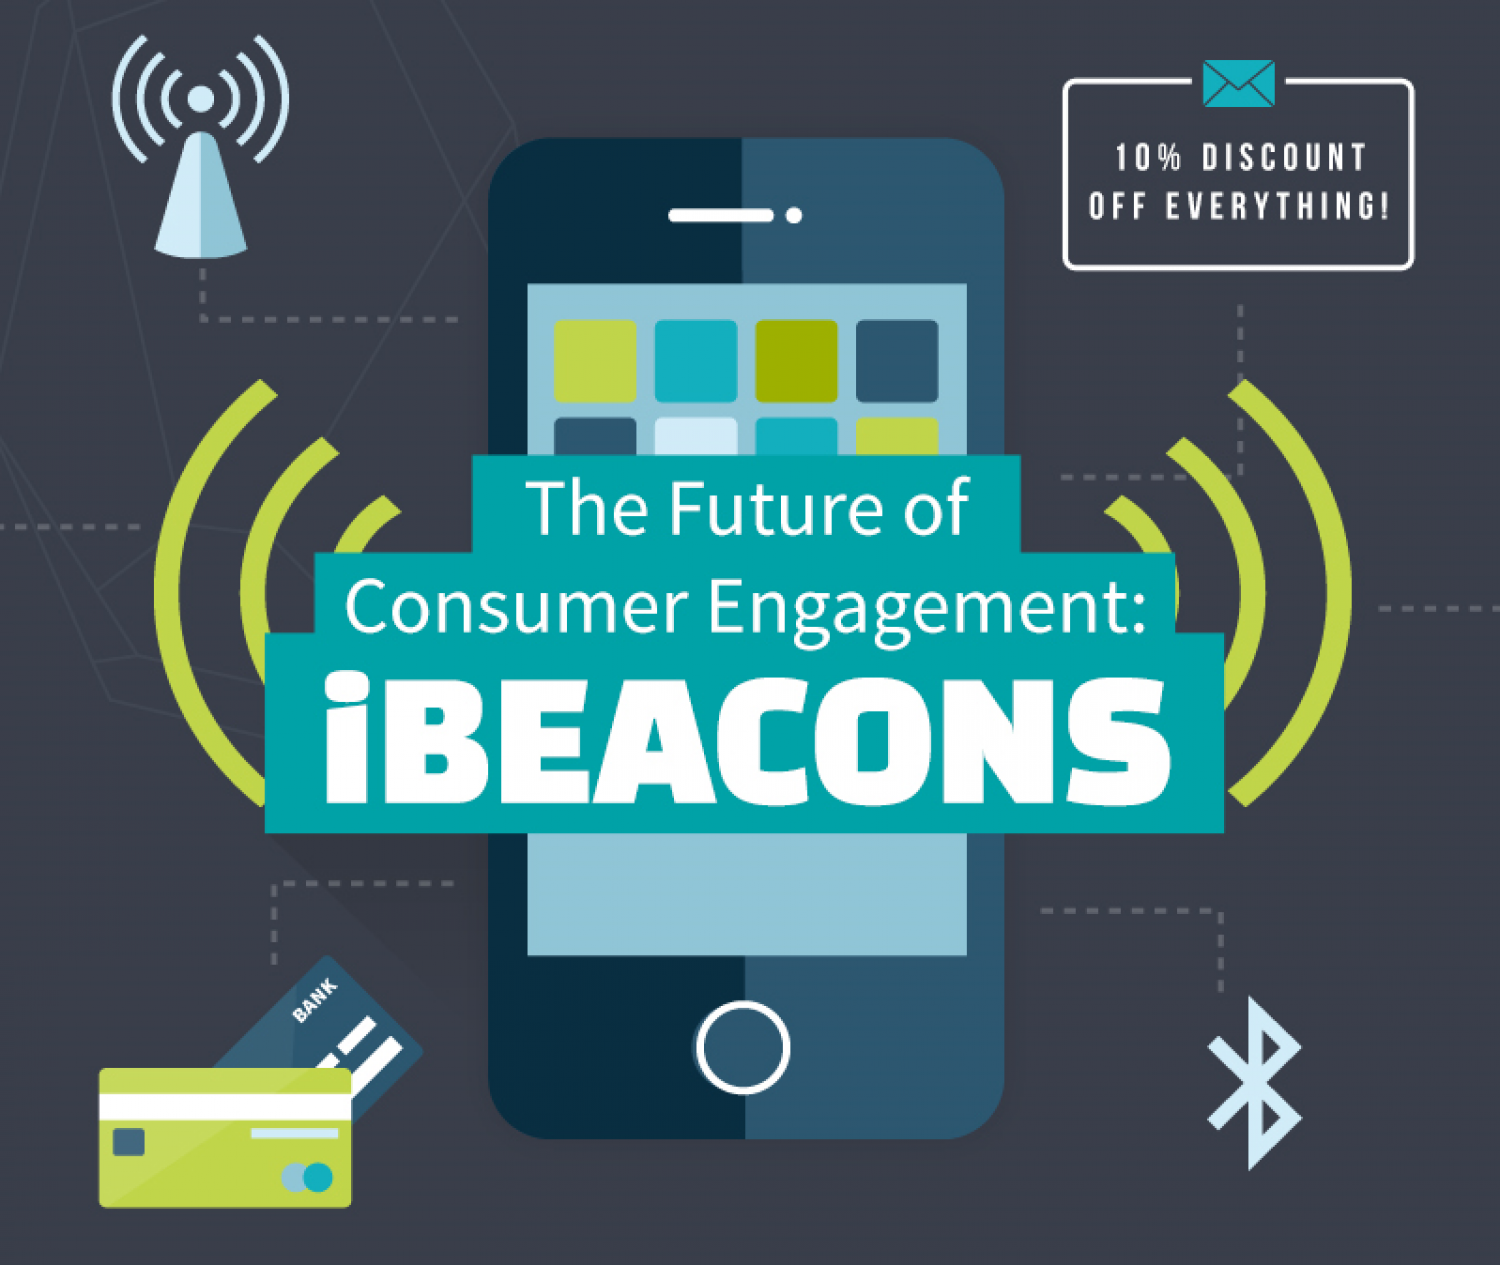 iBeacons: The Future of Consumer Engagement Infographic